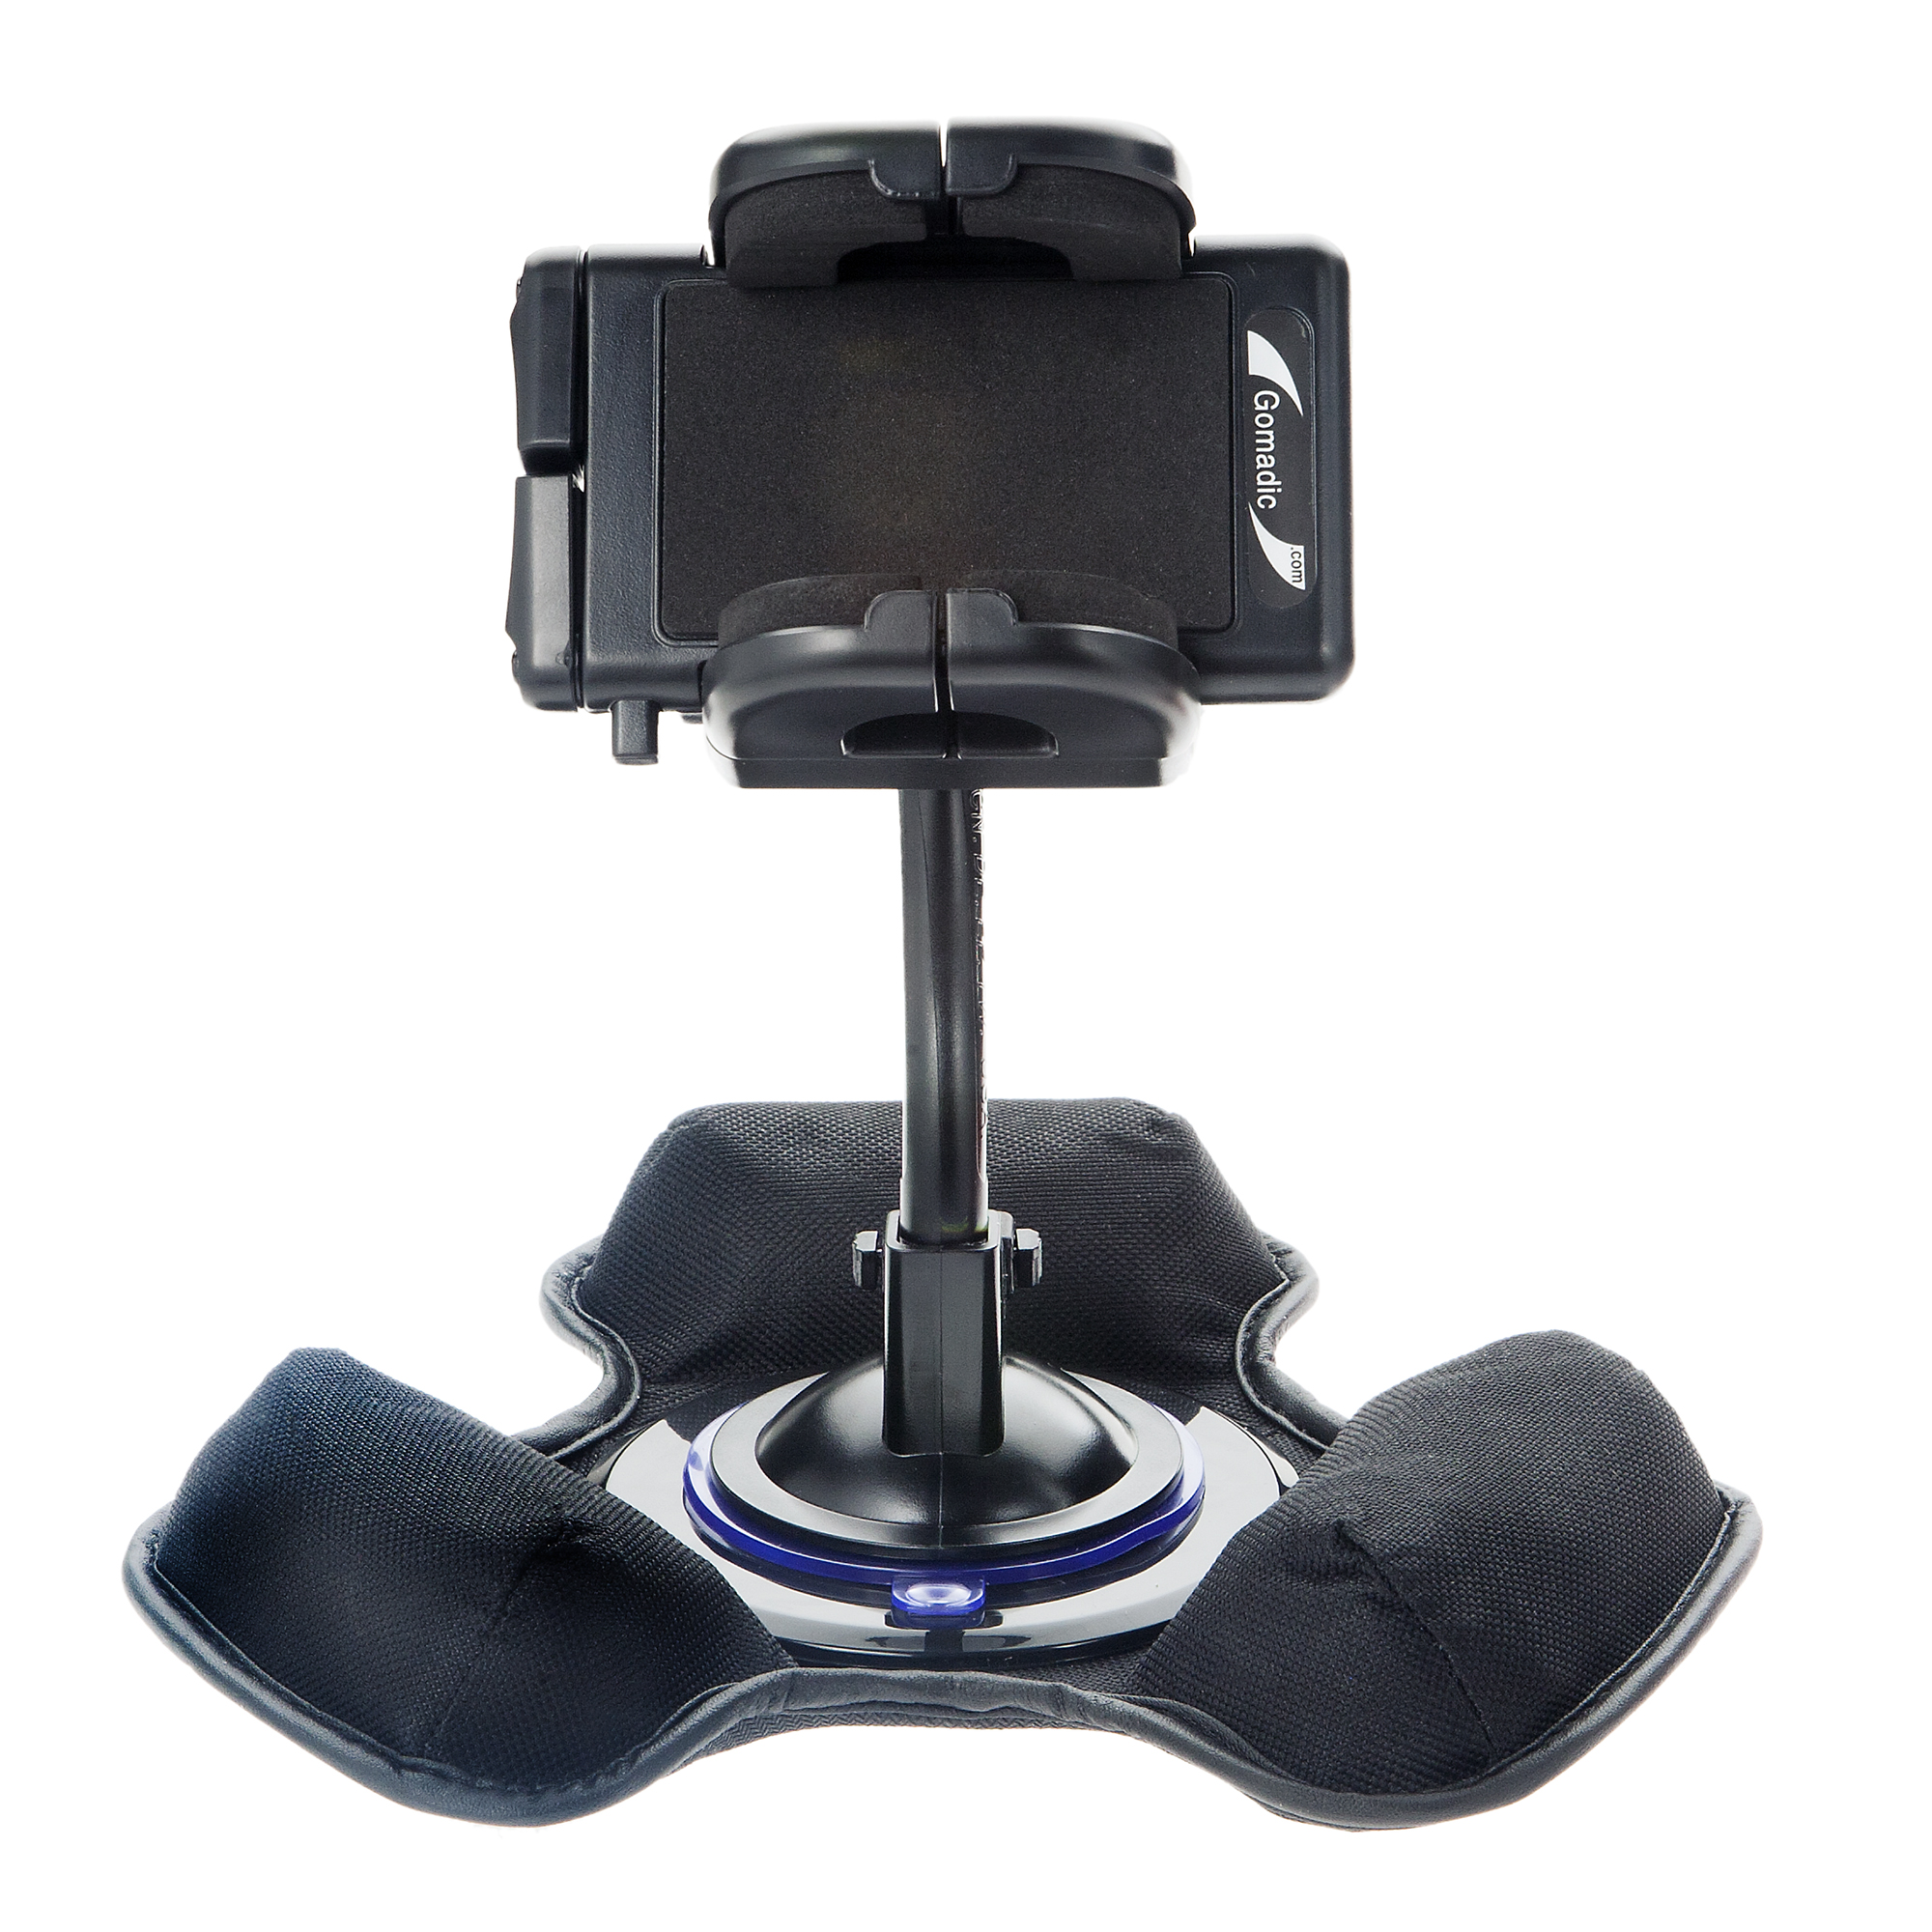 Car / Truck Vehicle Holder Mounting System for LG C660 Includes Unique Flexible Windshield Suction and Universal Dashboard Mount Options